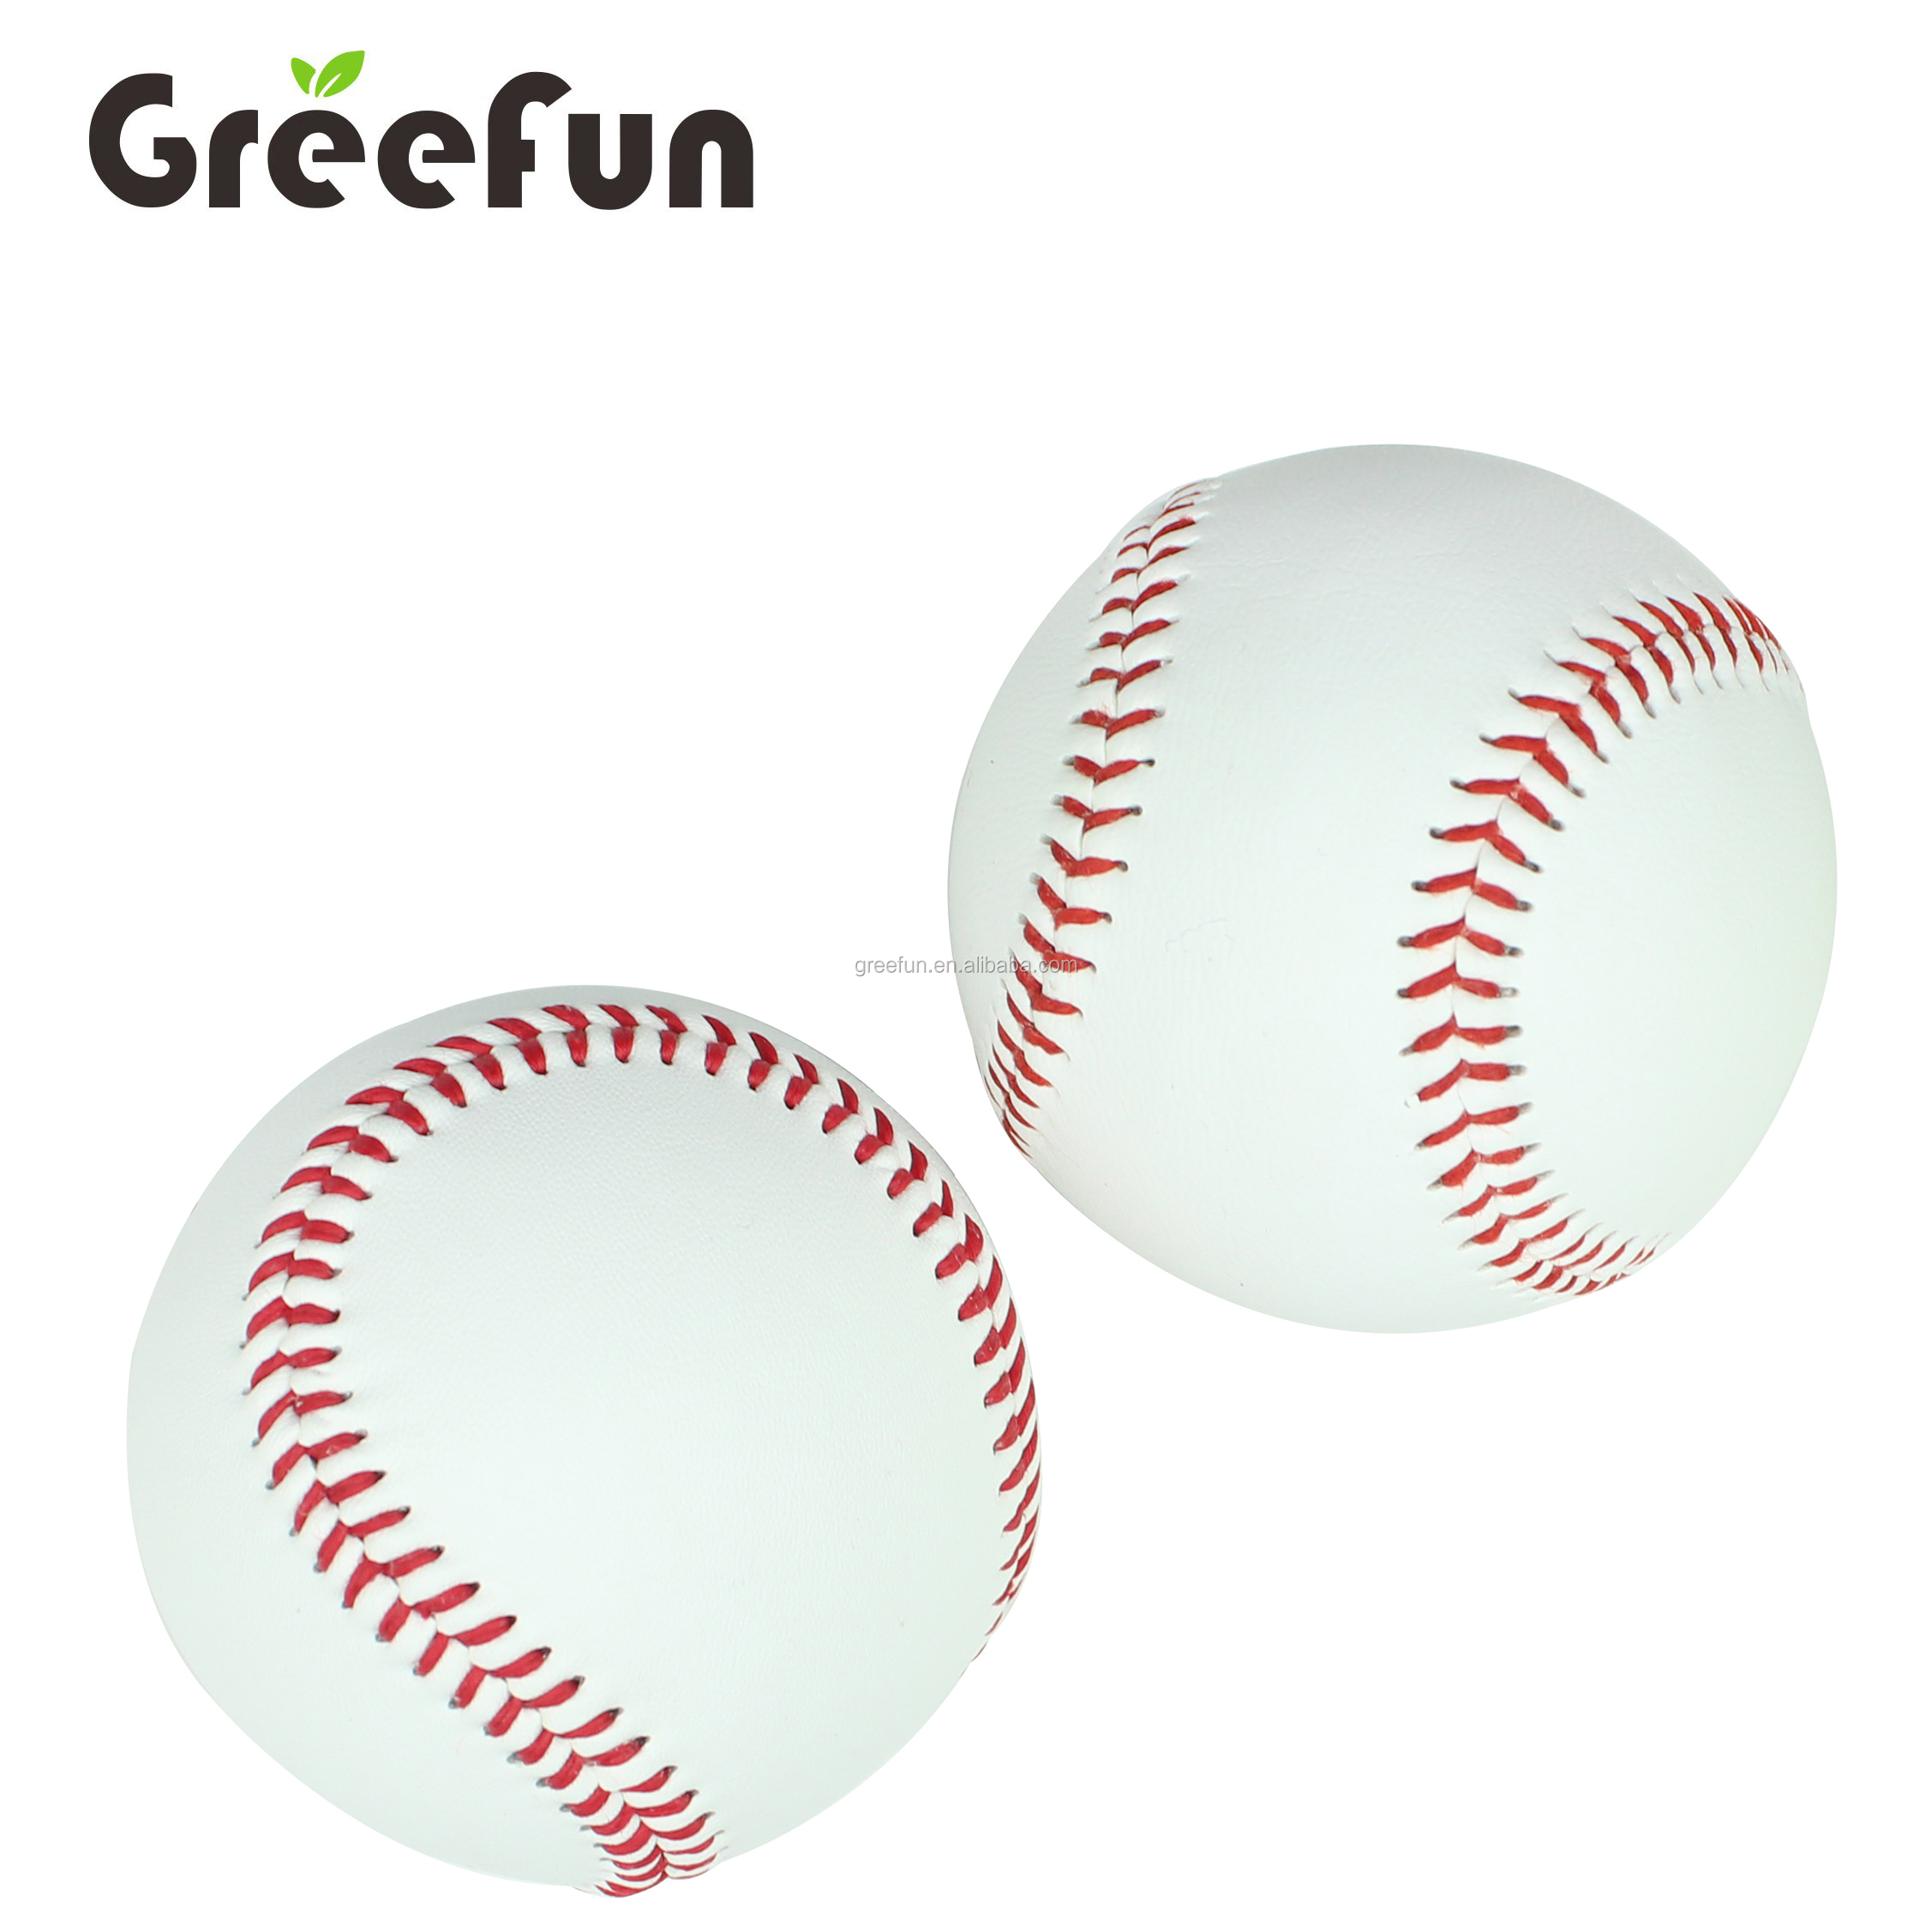 Wholesale Good Quality Leather and PVC Softball Custom Soft Baseball Training Equipment Rubber Baseball For Outdoor Sports